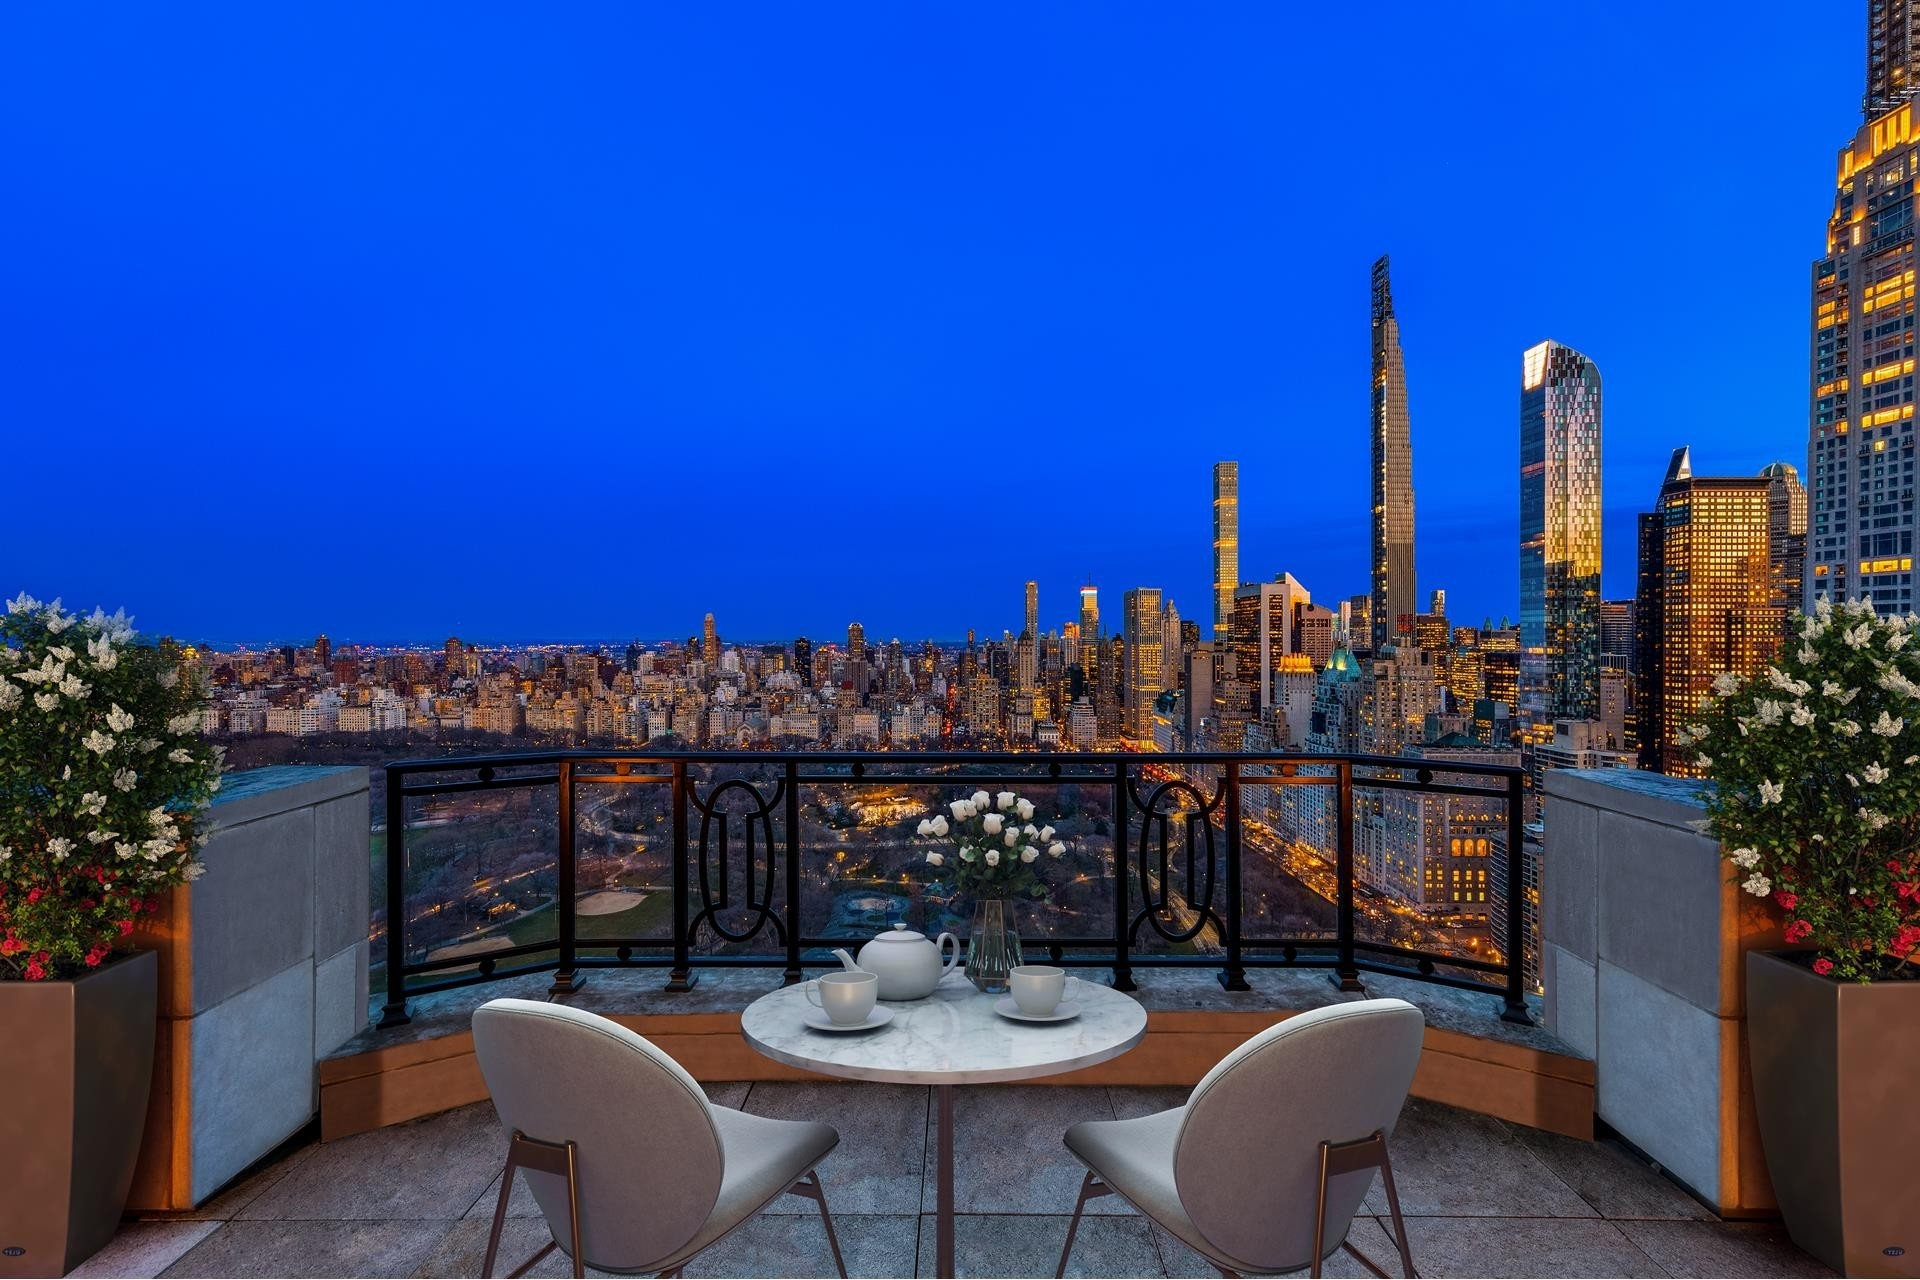 Property в 15 Cpw, 15 CENTRAL PARK W, PH41 Lincoln Square, New York, NY 10023